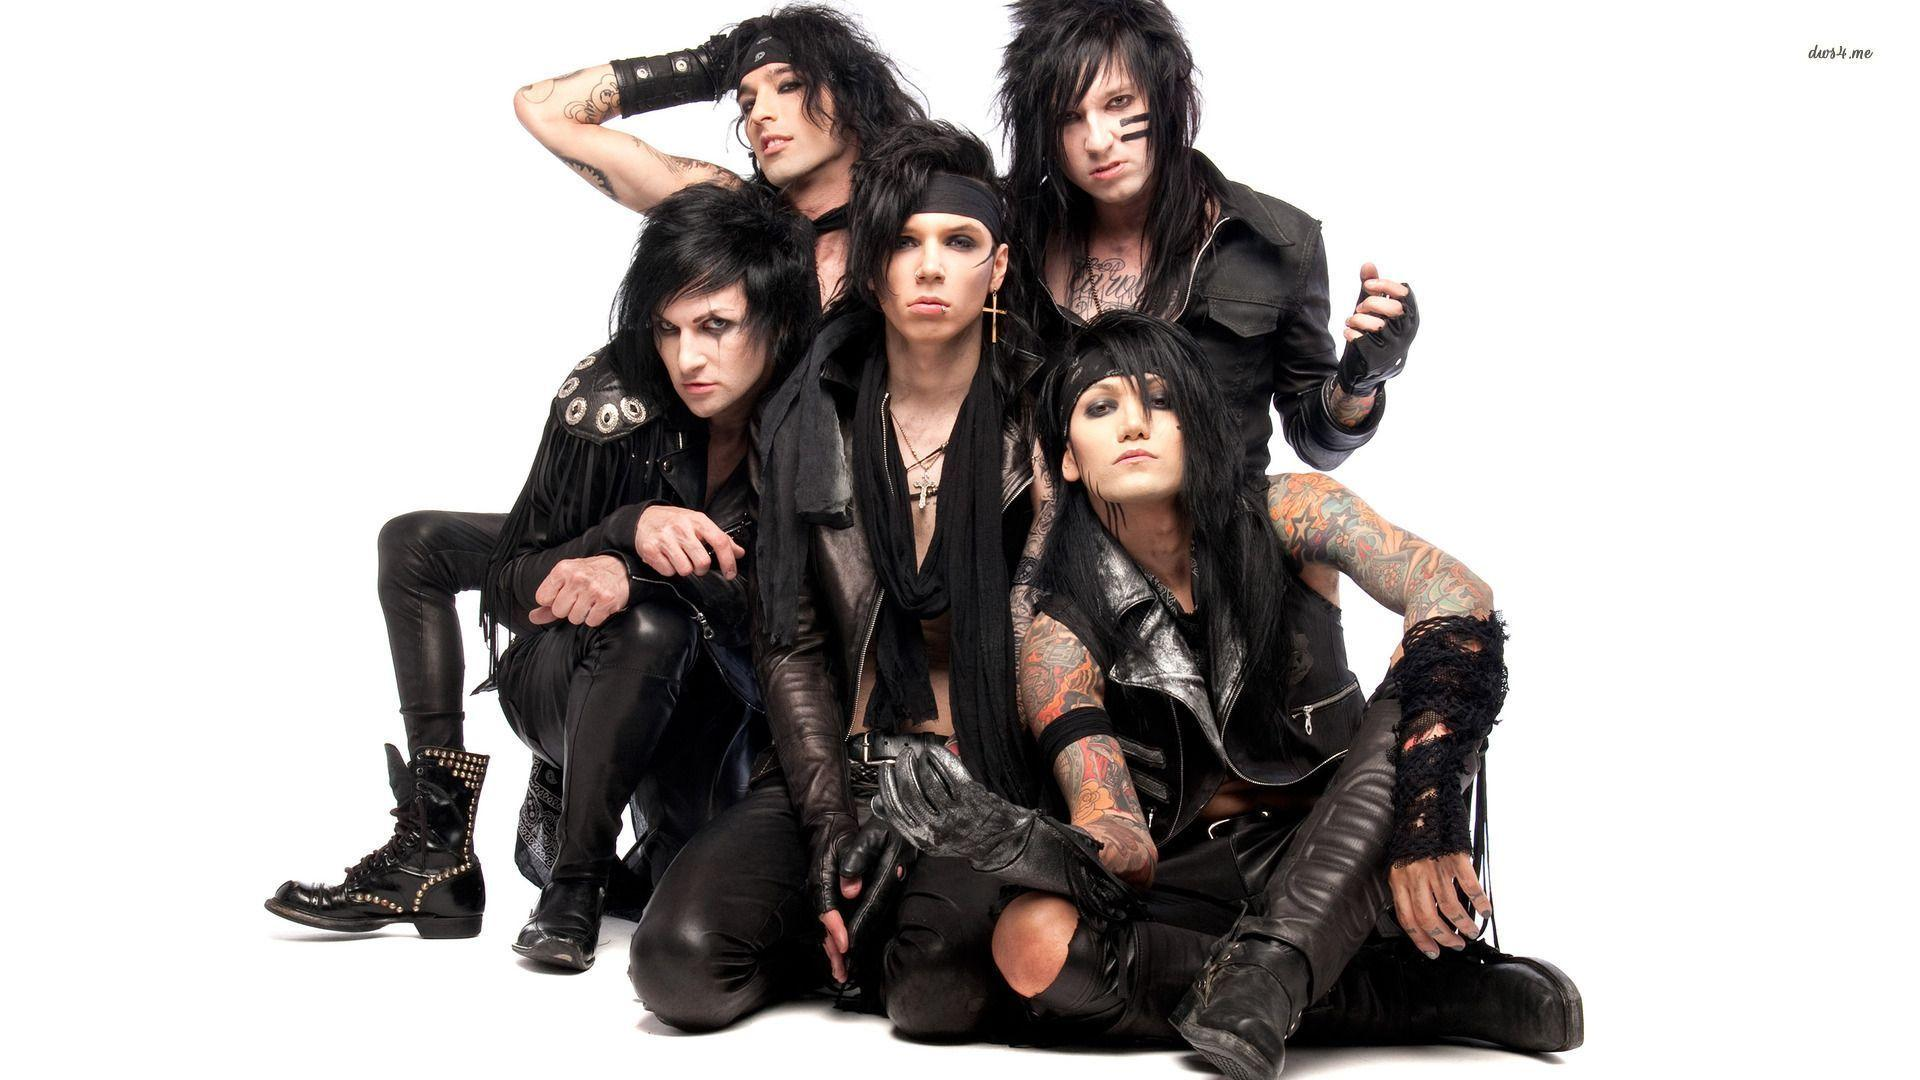 Black Veil Brides 2015 Wallpapers 1920x1080